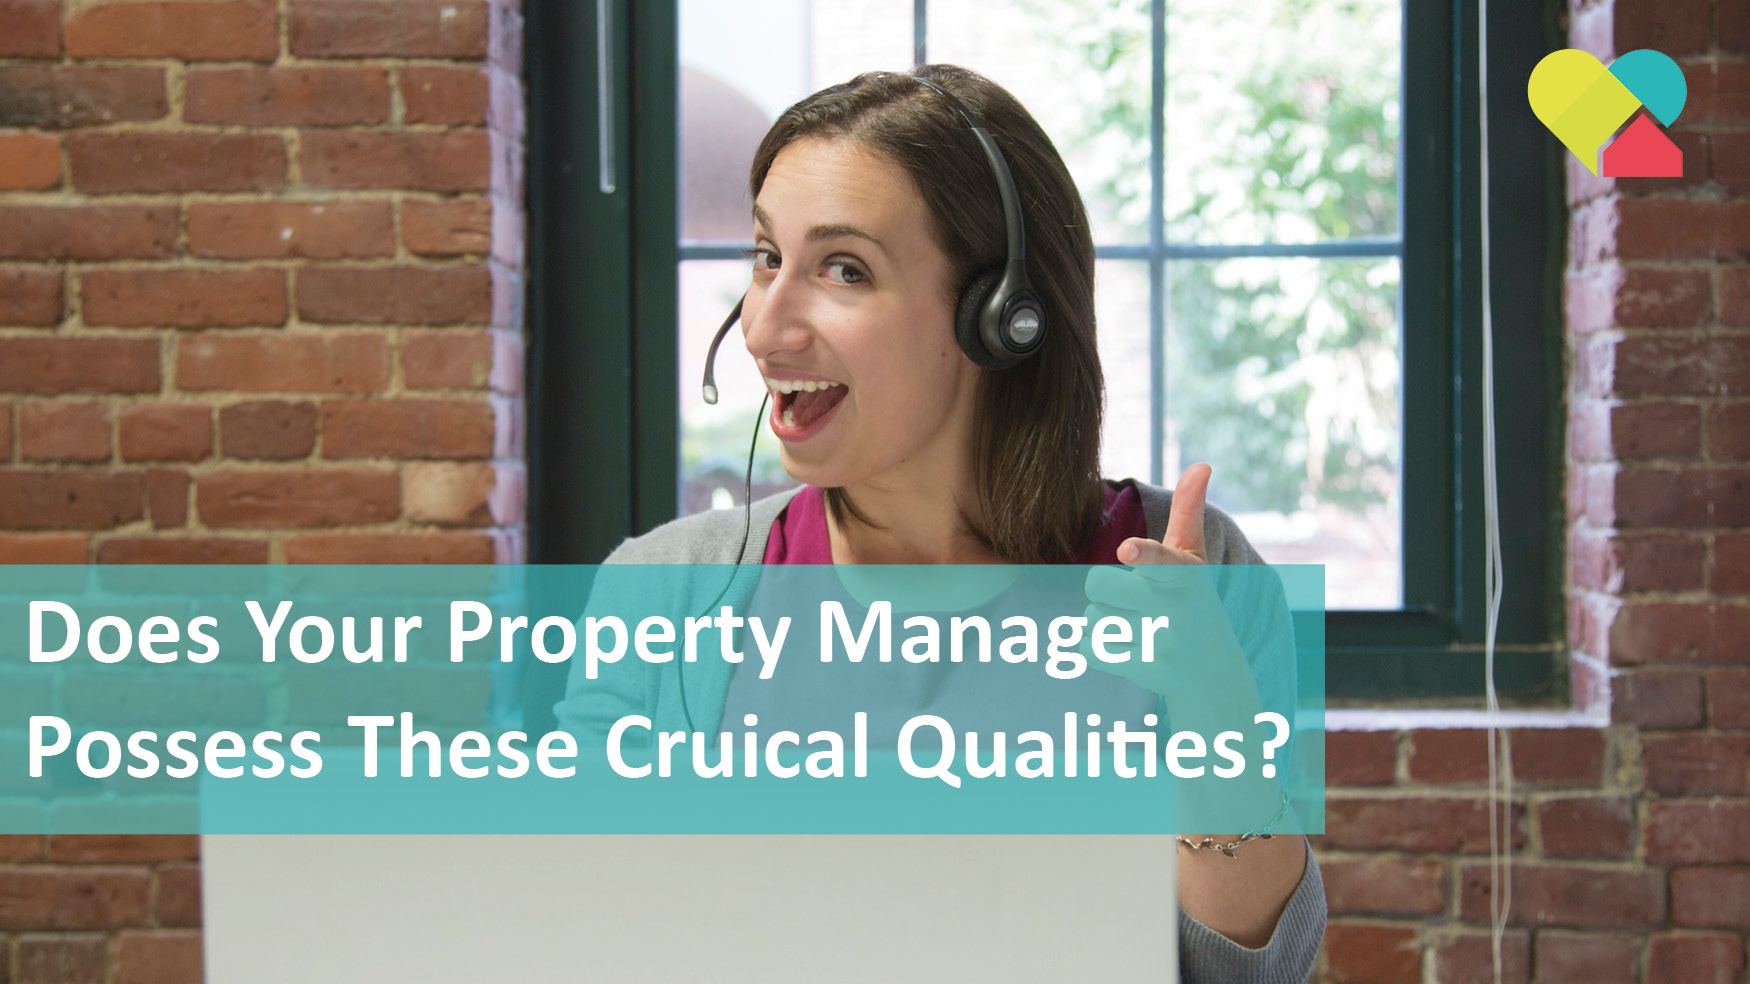 Does Your Property Manager Possess These Two Cruical Skills